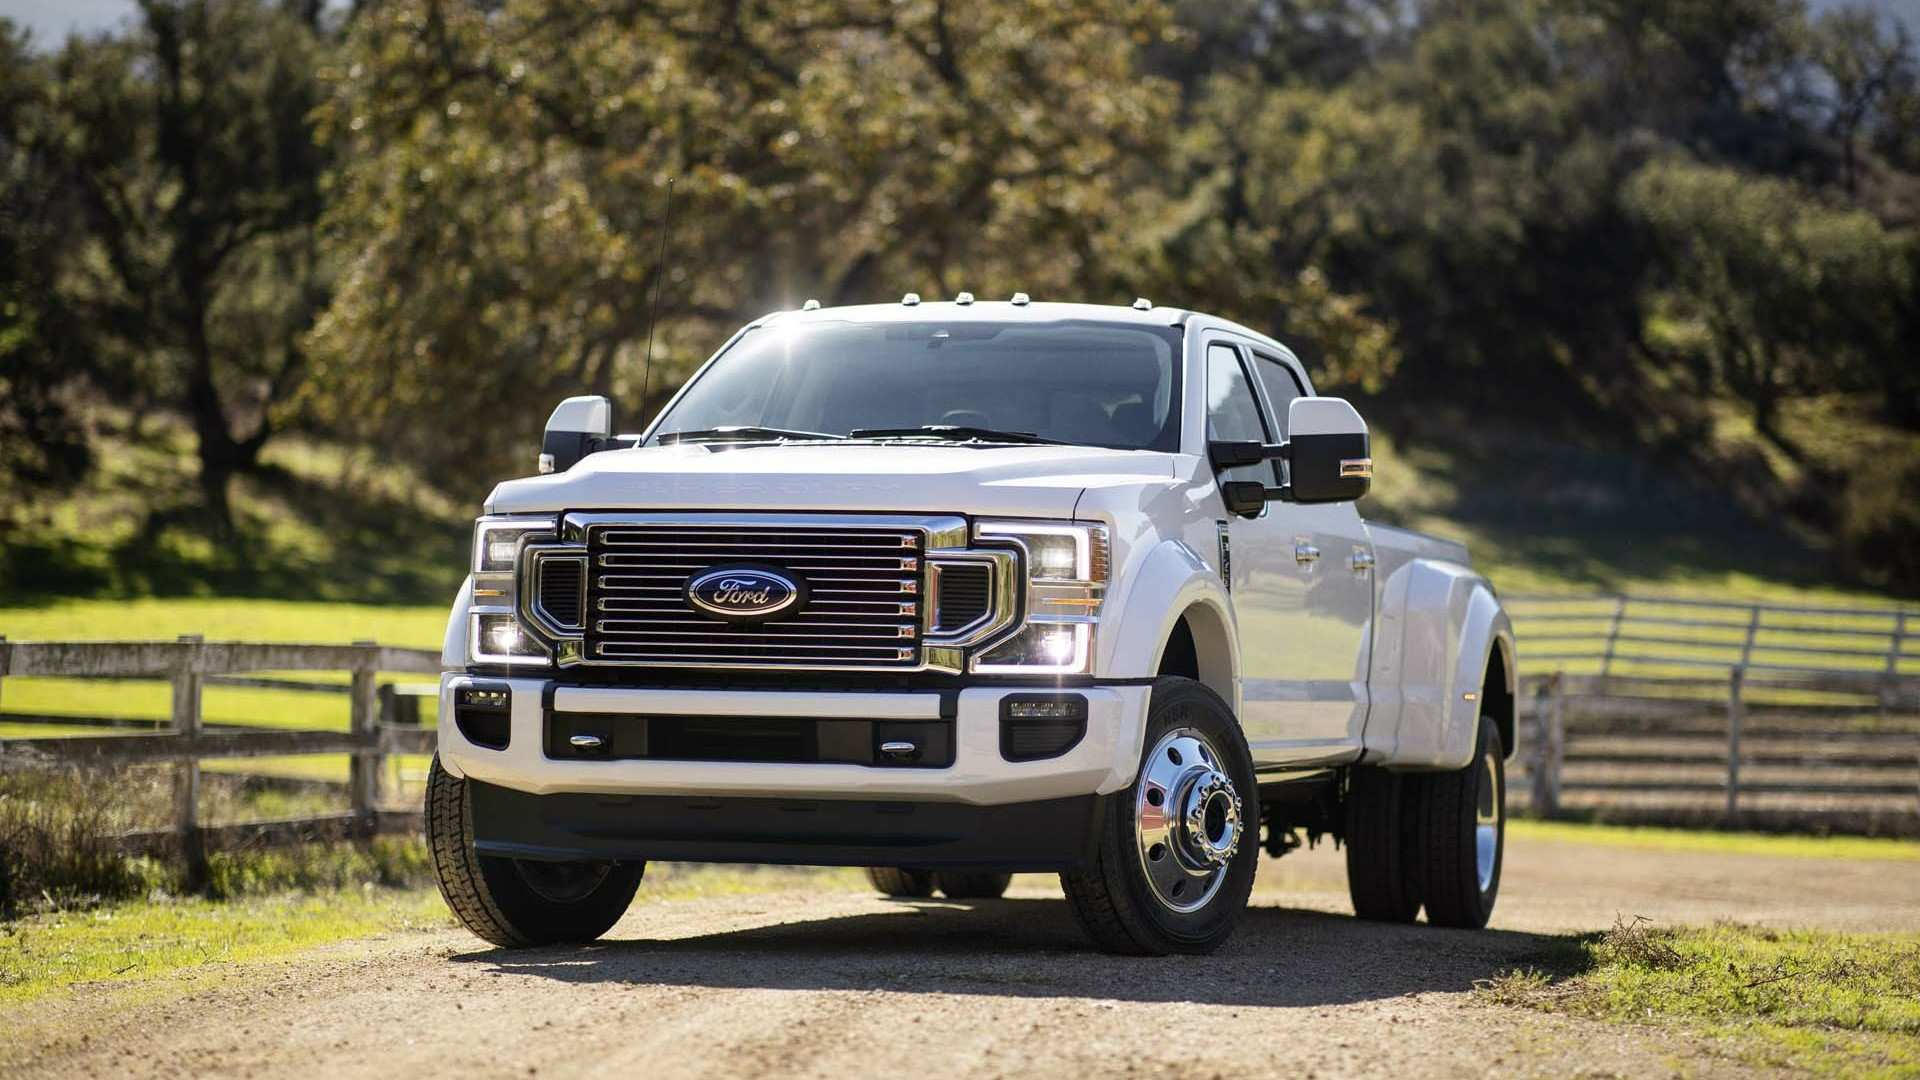 92 The Best 2020 Ford F 250 Specs And Review